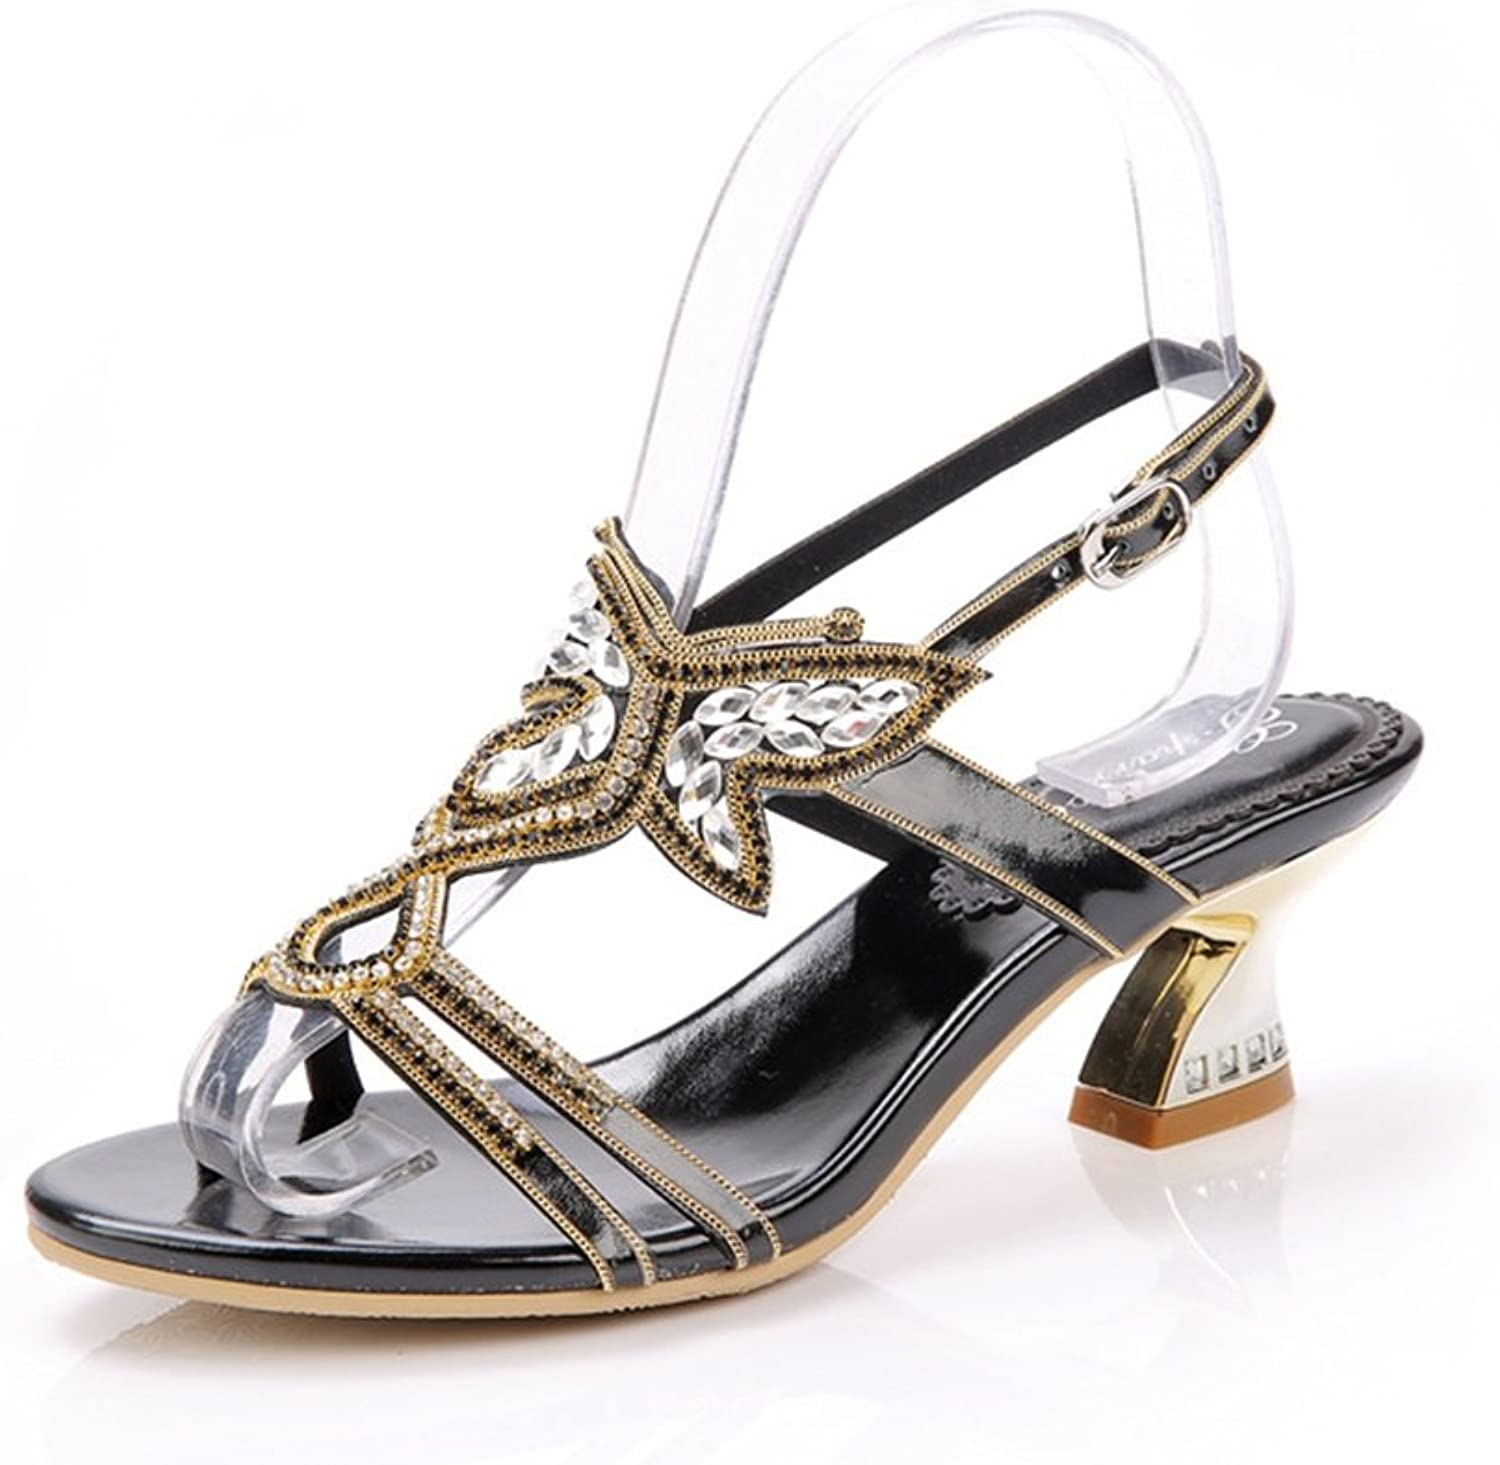 Jiang Women's shoes PU Spring Summer Fall Sandals Low Heel Rhinestone for Party & Evening Dress Sandals